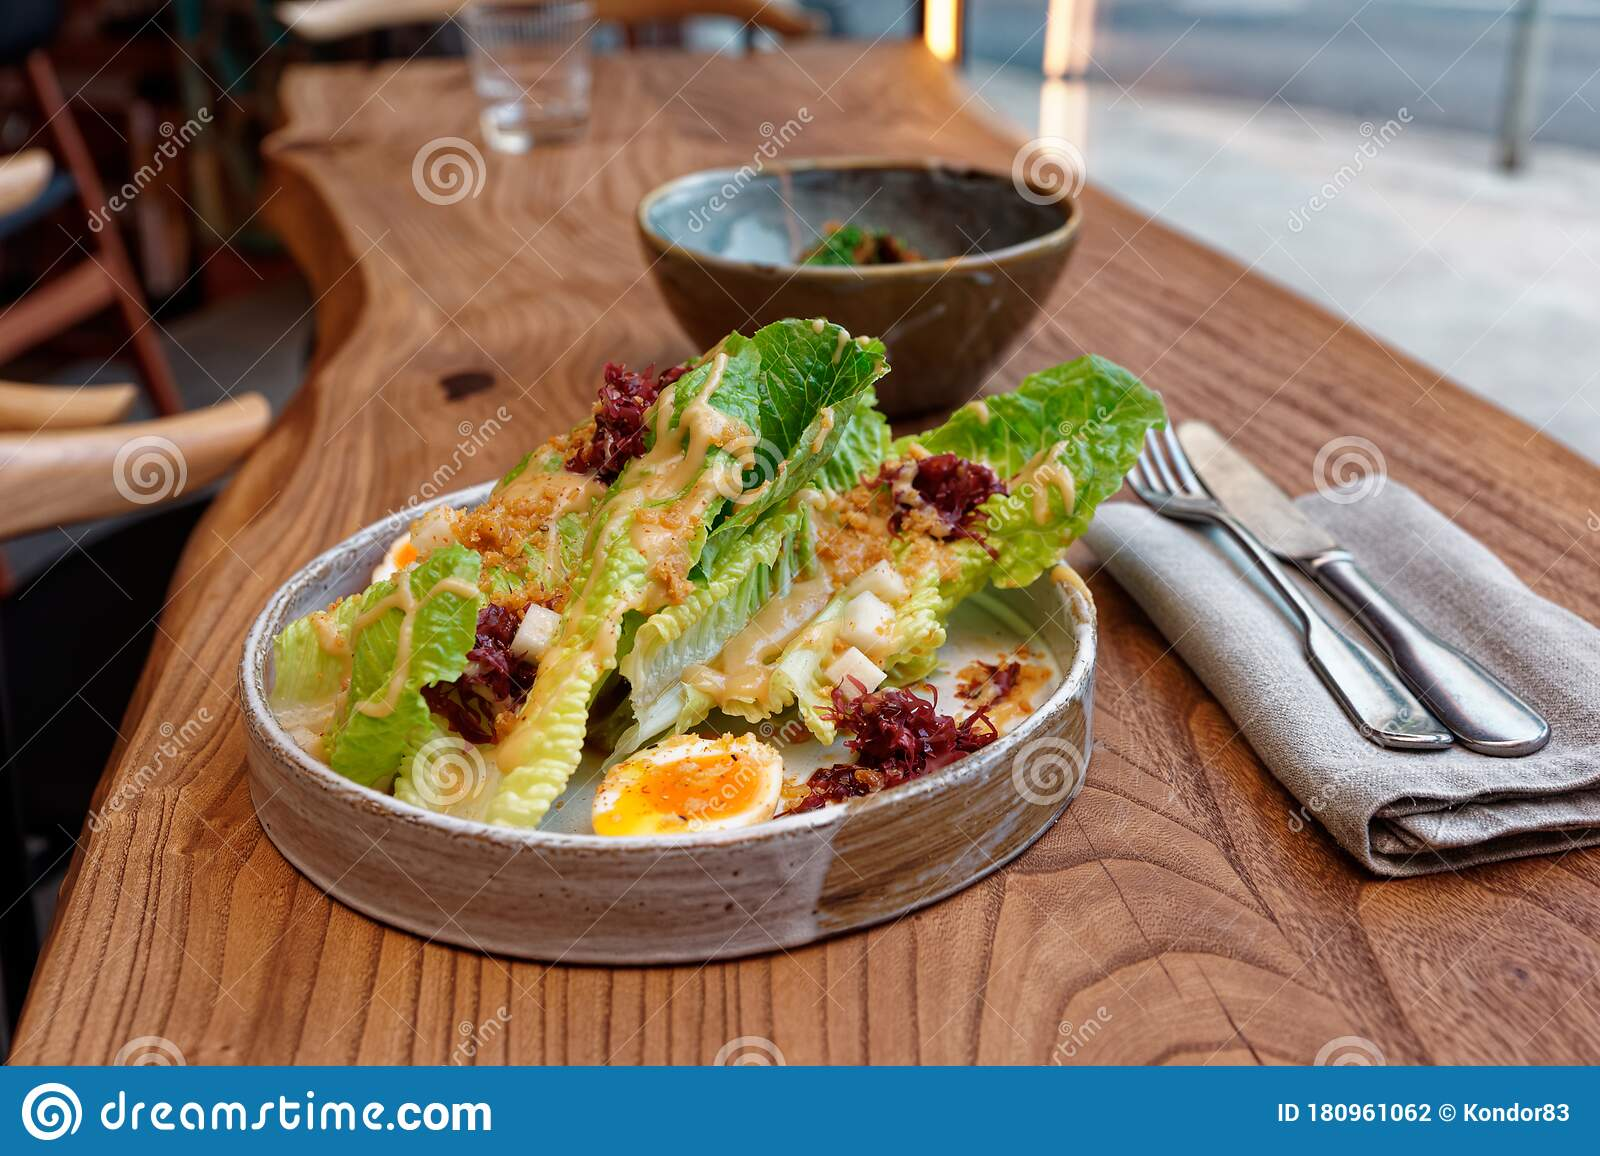 Caesar Salad Cooked In Asian Way Stock Photo Image Of Bowl International 180961062